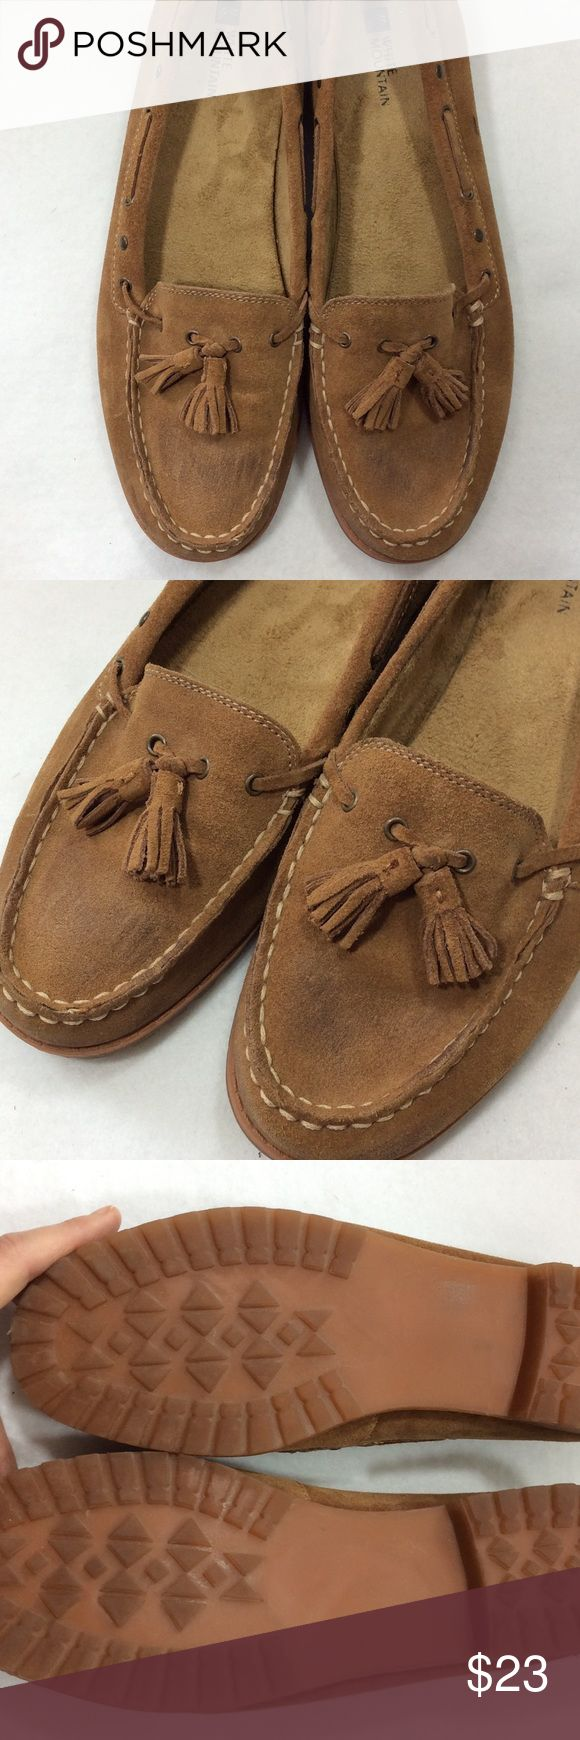 Tan Suede Loafers Perfect for the office or casual, these tan Suede Loafers are versatile and comfortable Loafers. Tassel accent on toe, cream top stitching. Minor scuffing on toe, in otherwise great condition. Leather upper, rubber sole. True to size 10 by White Mountain Shoes Flats & Loafers